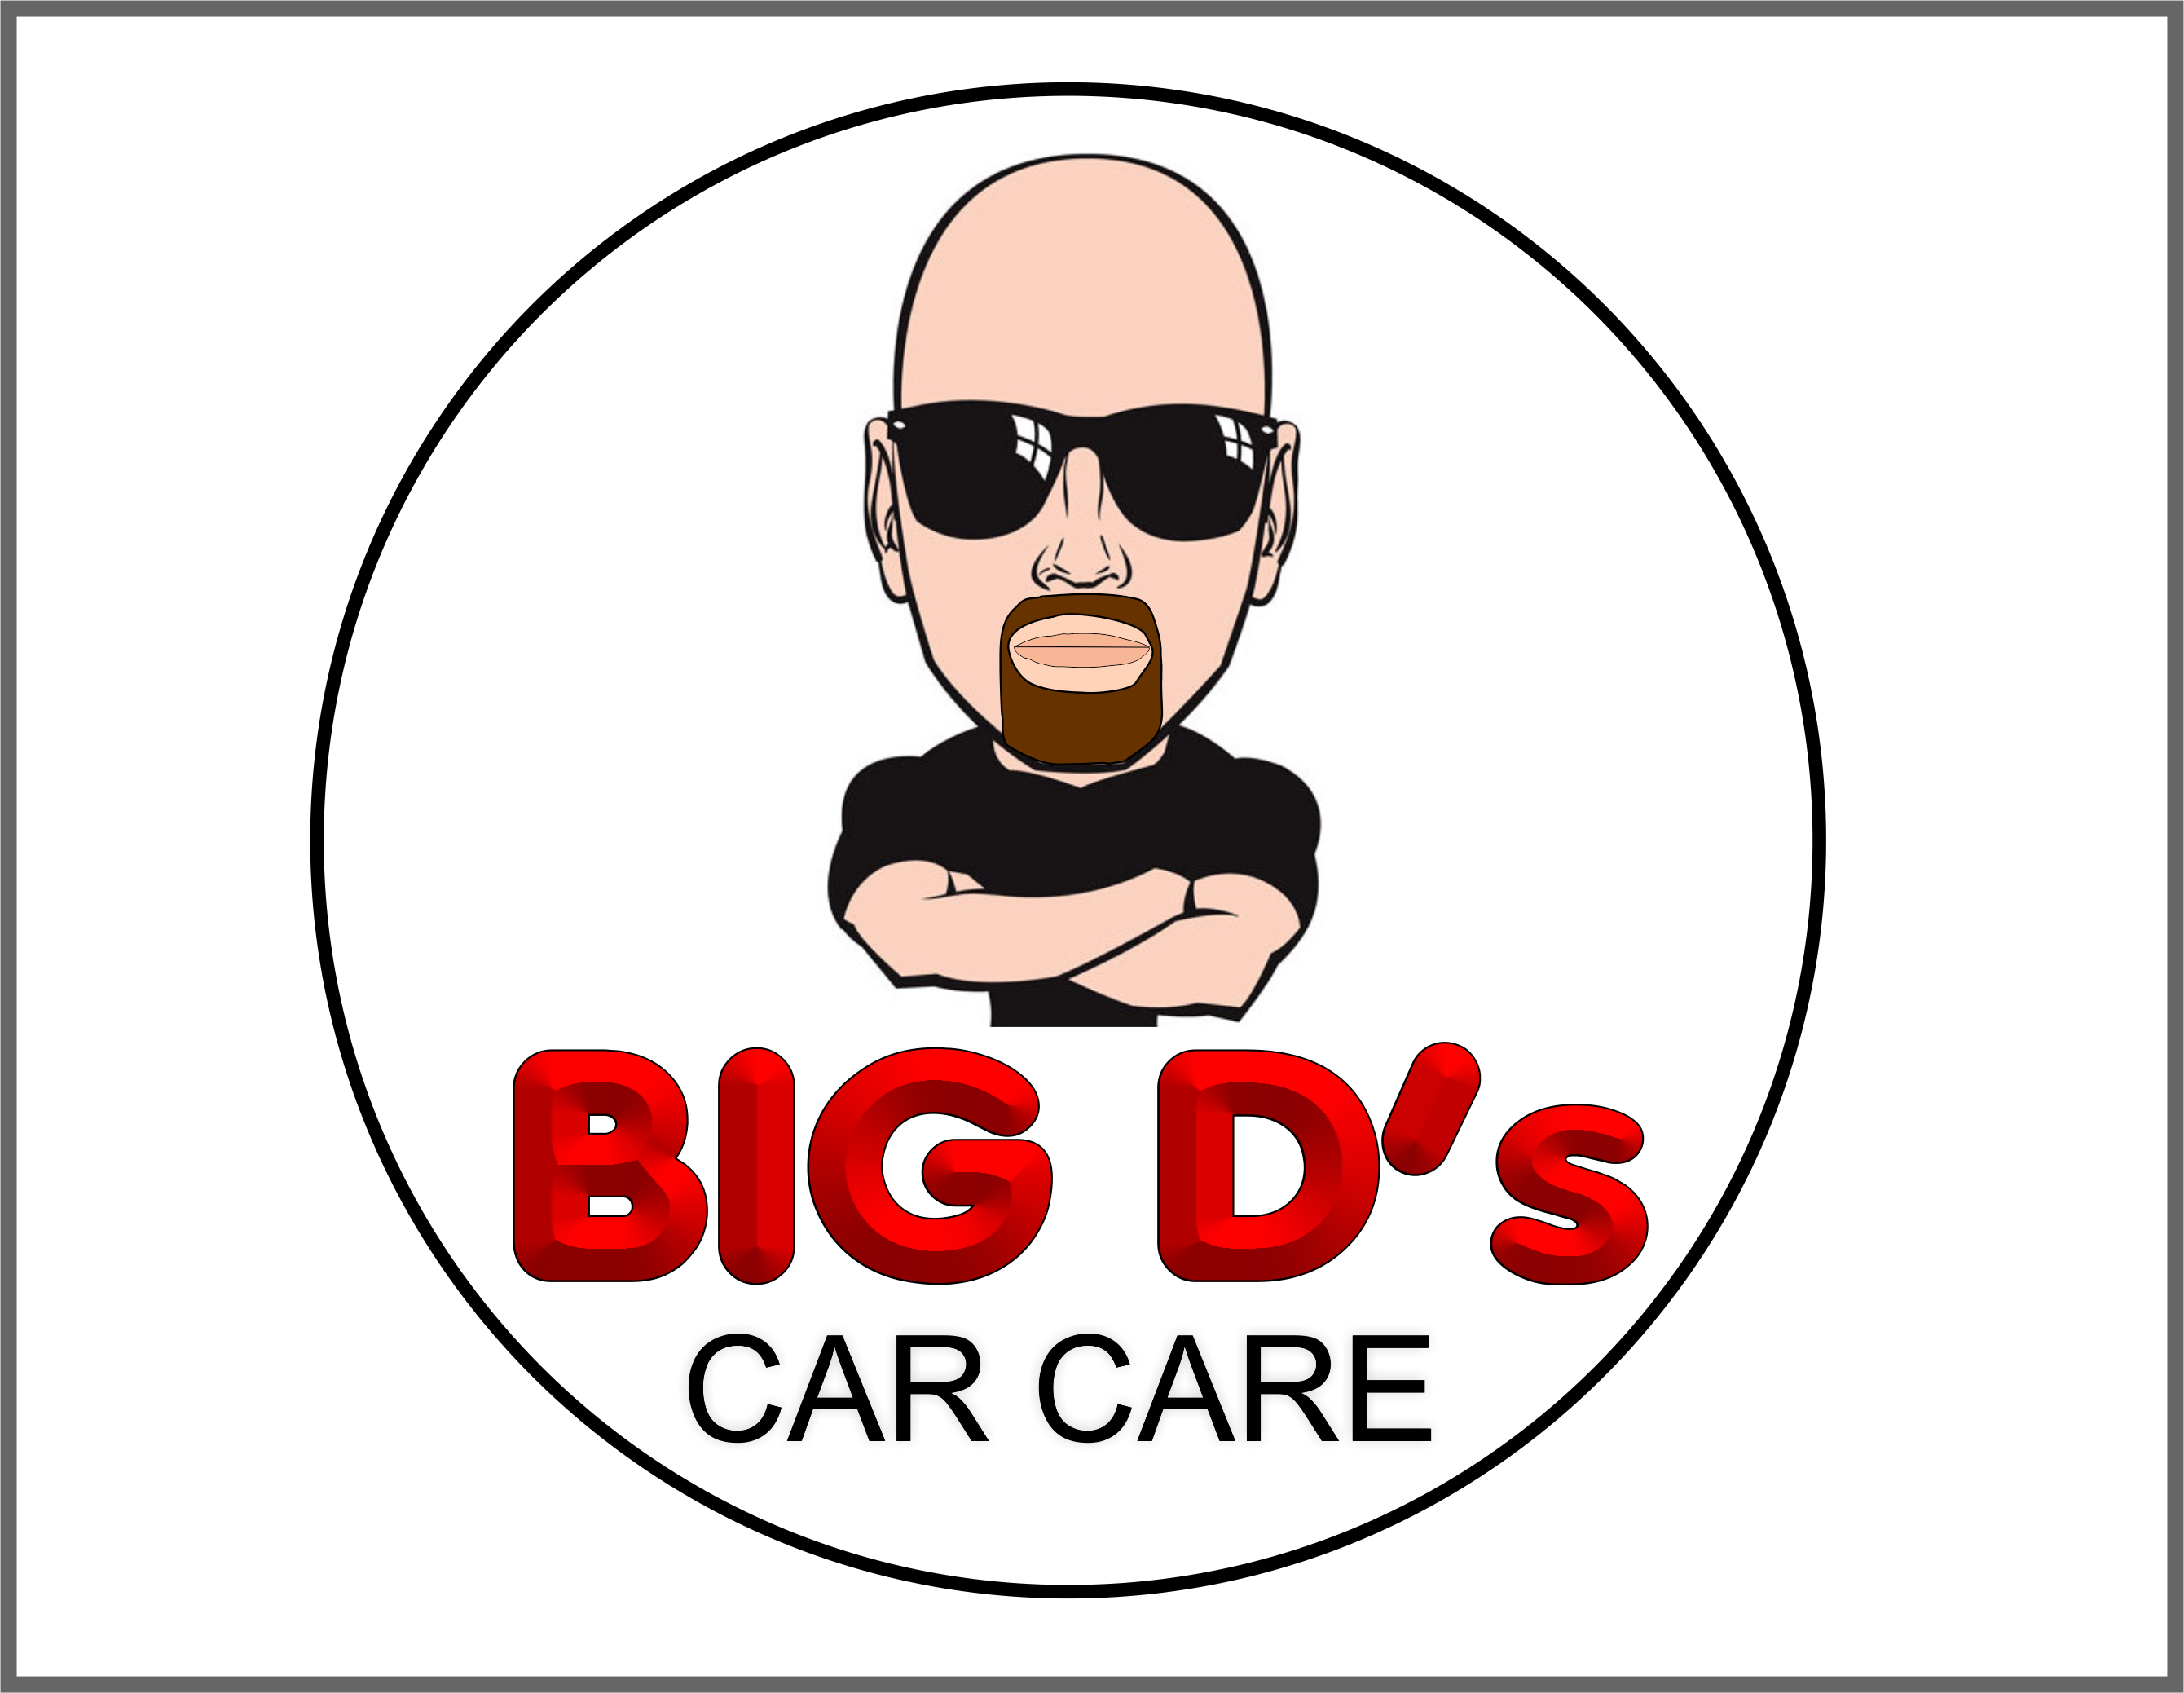 Big d's Car Care Products